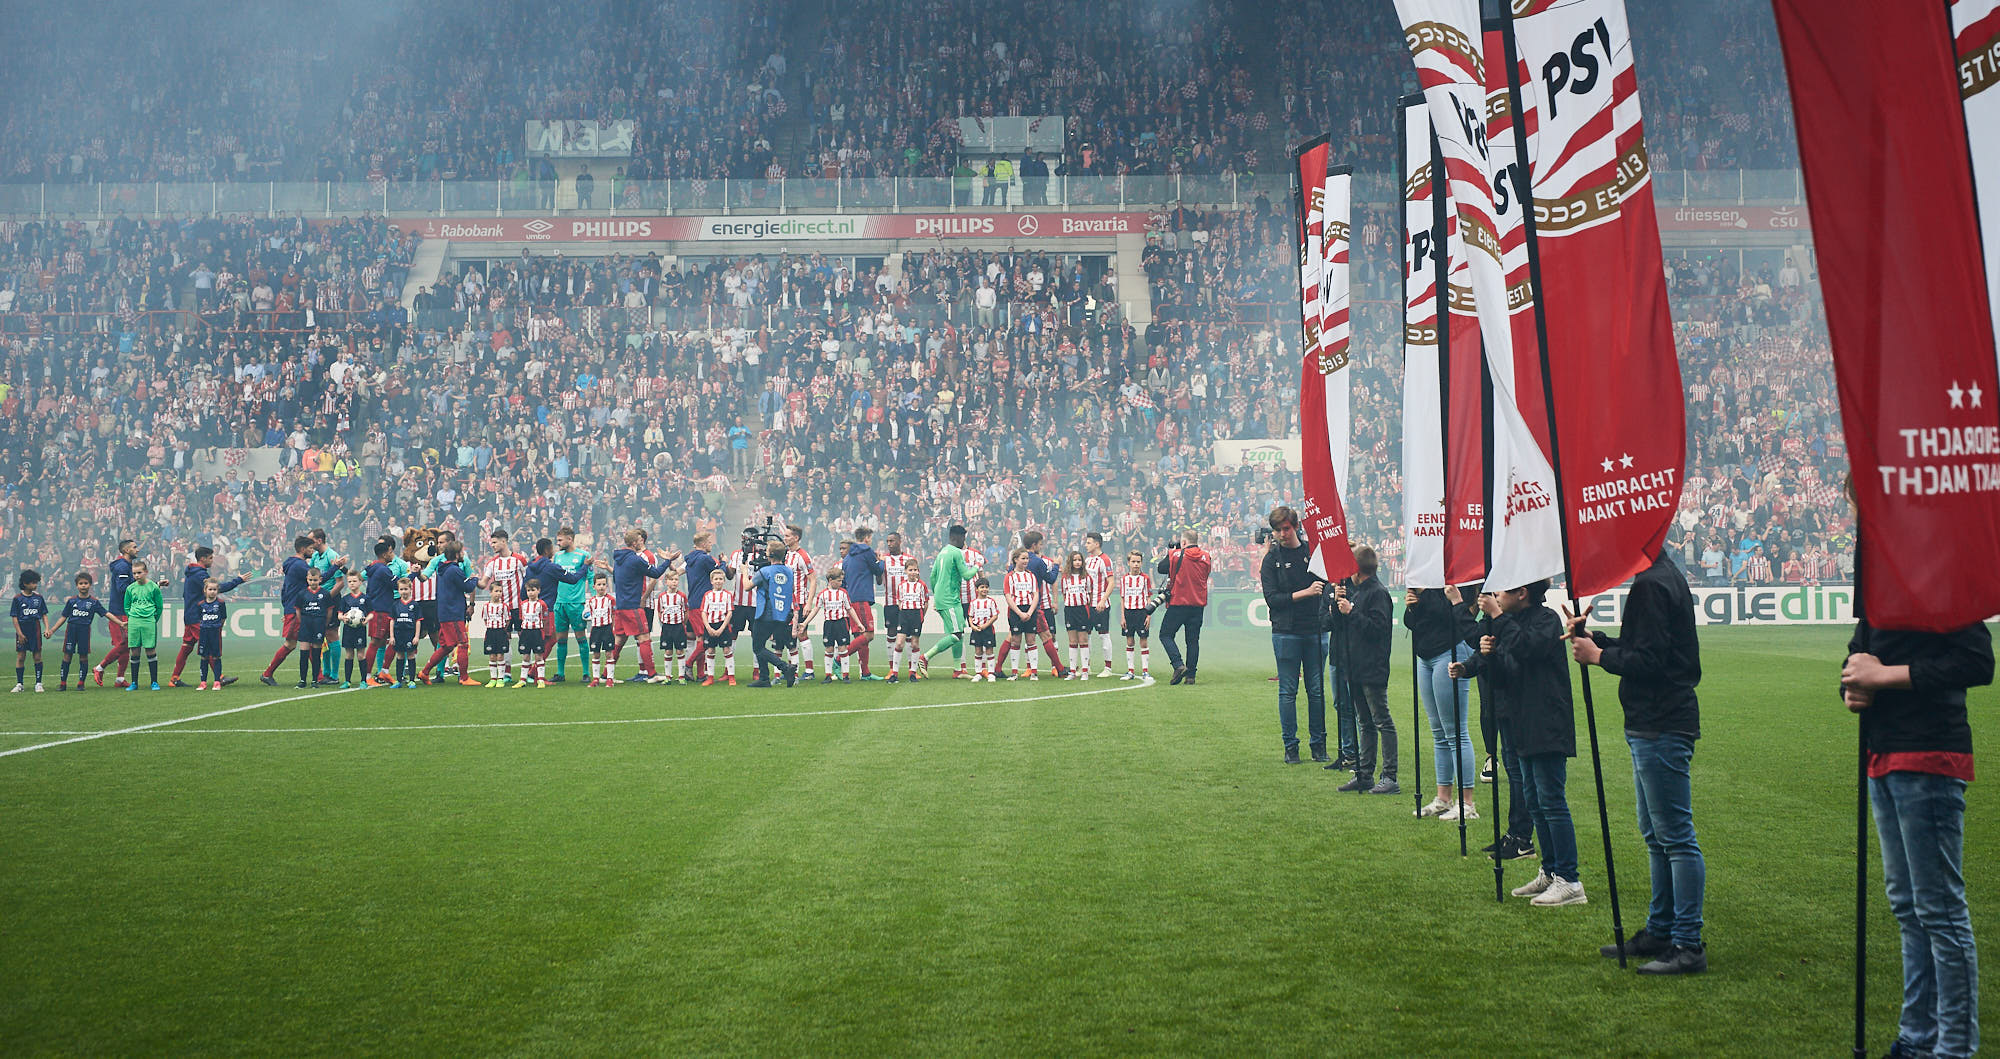 PSV Eindhoven and Ajax Amsterdam football players line up in the Philips Stadium